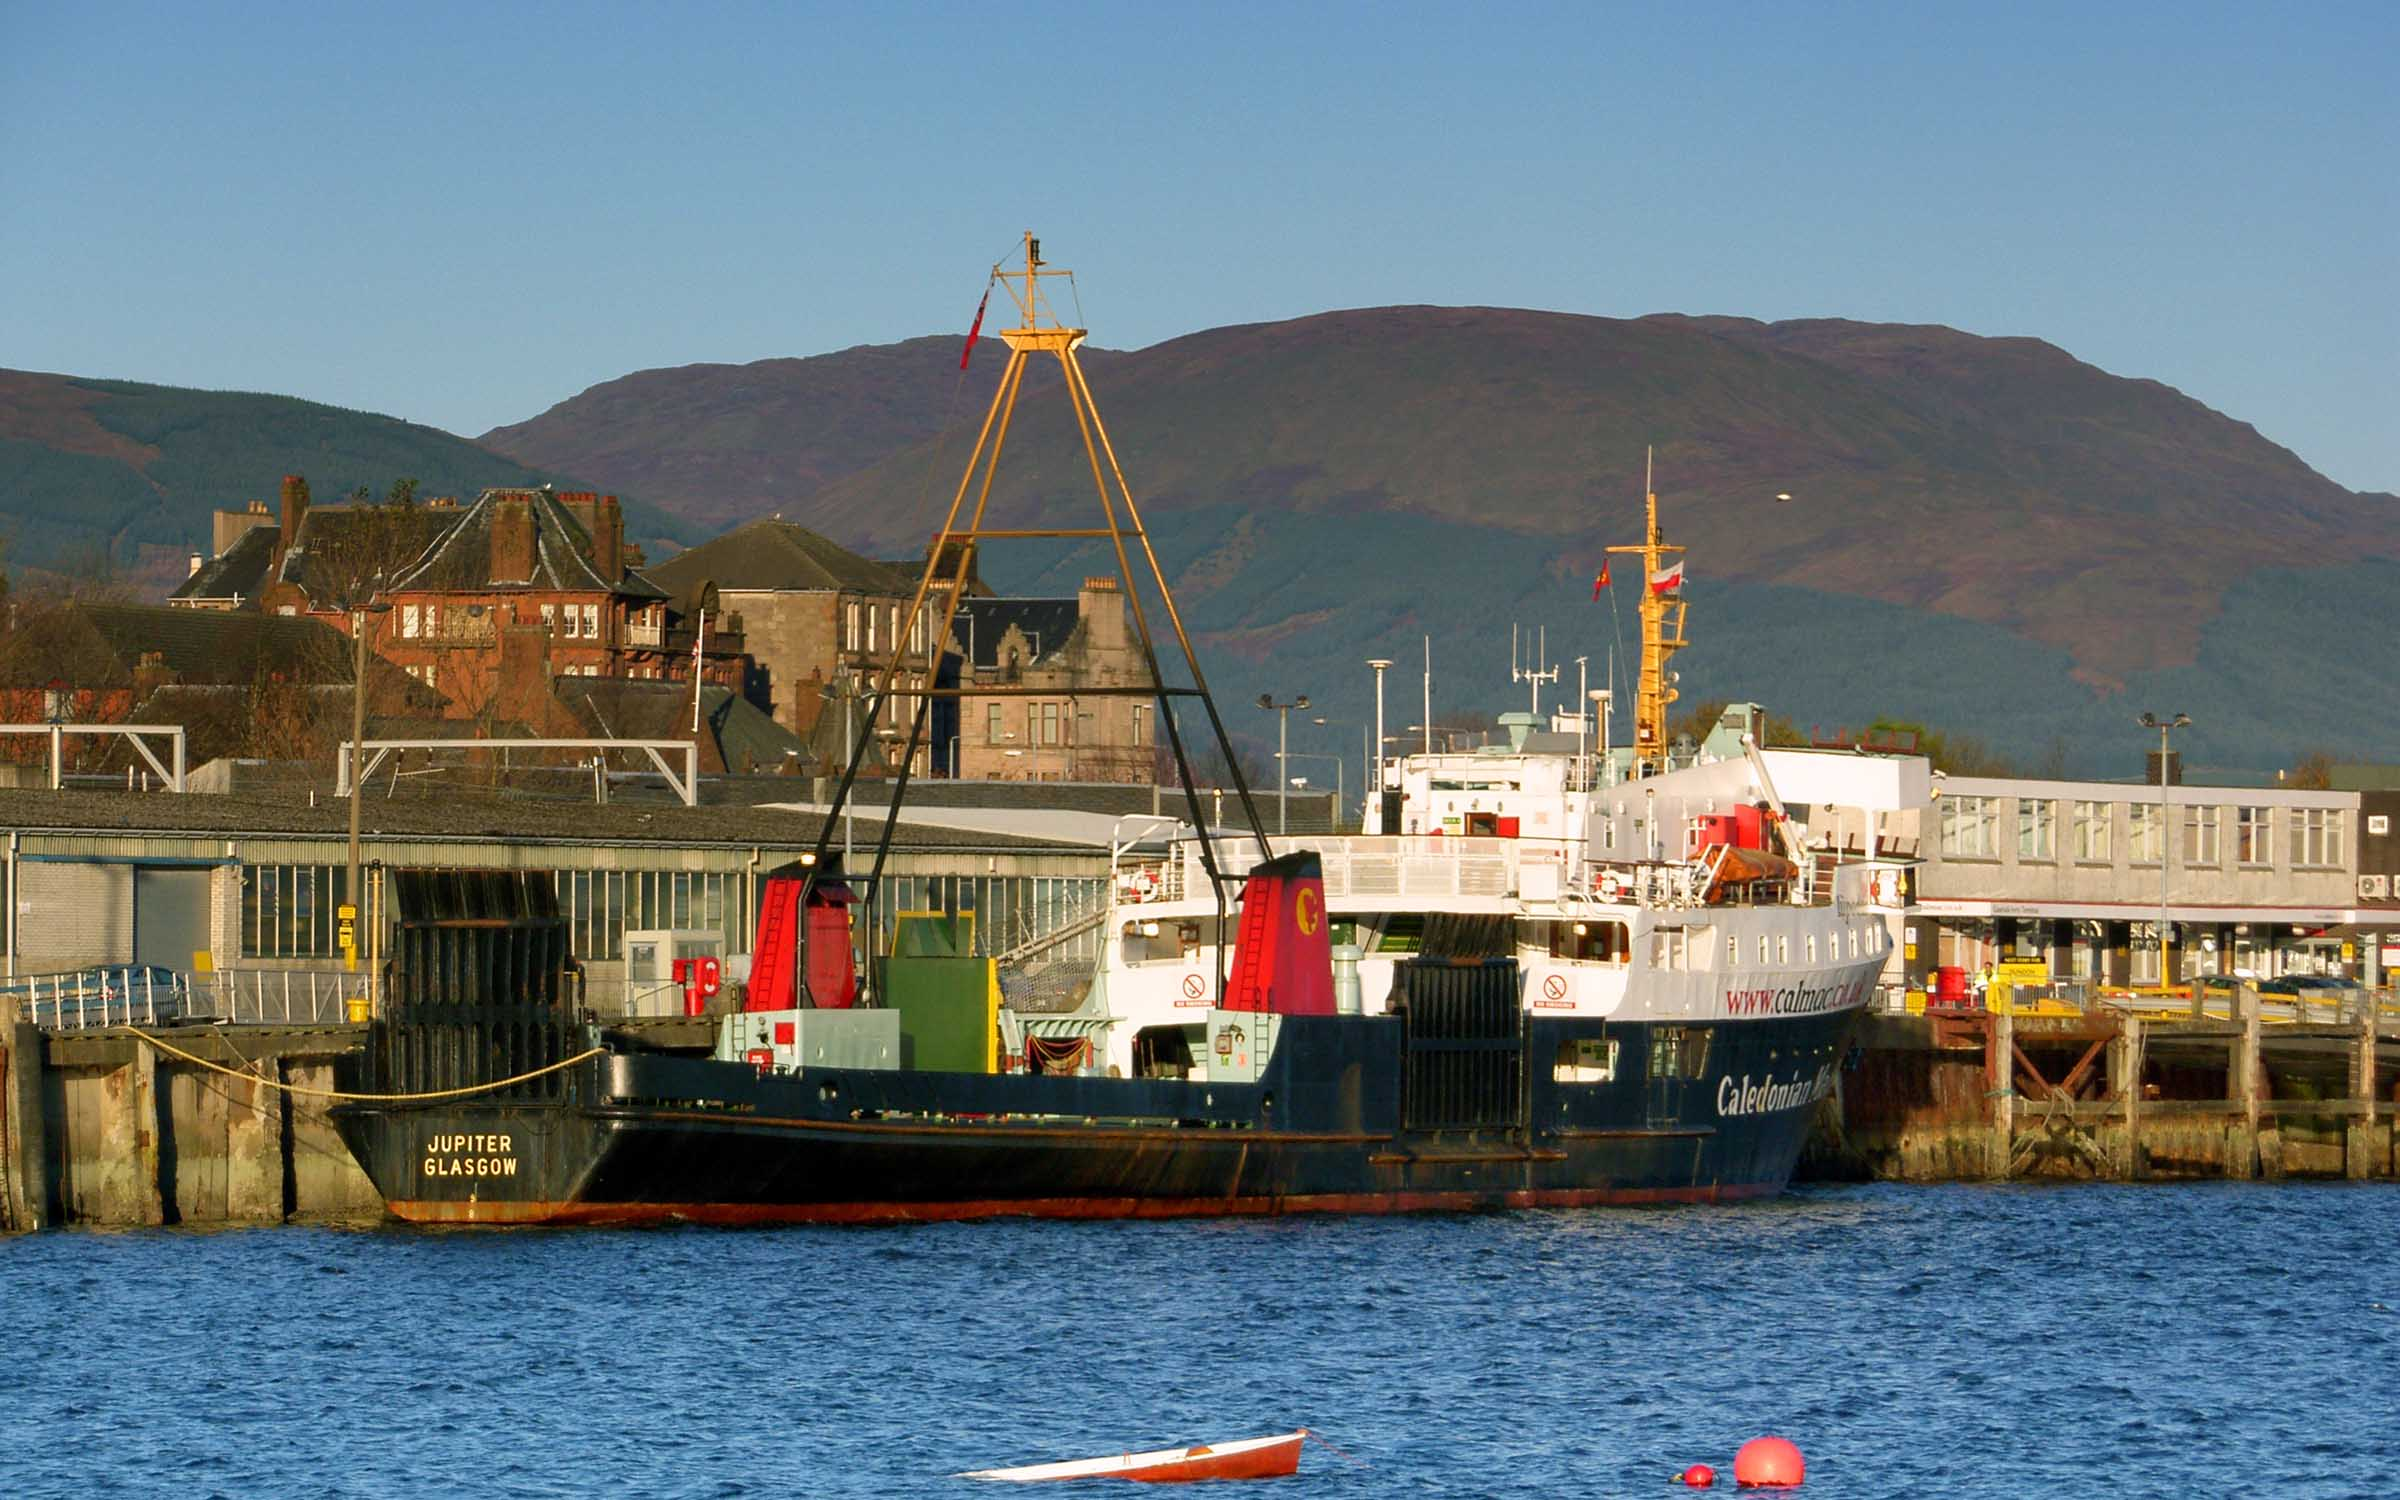 Jupiter lying at Gourock pier (Ships of CalMac)